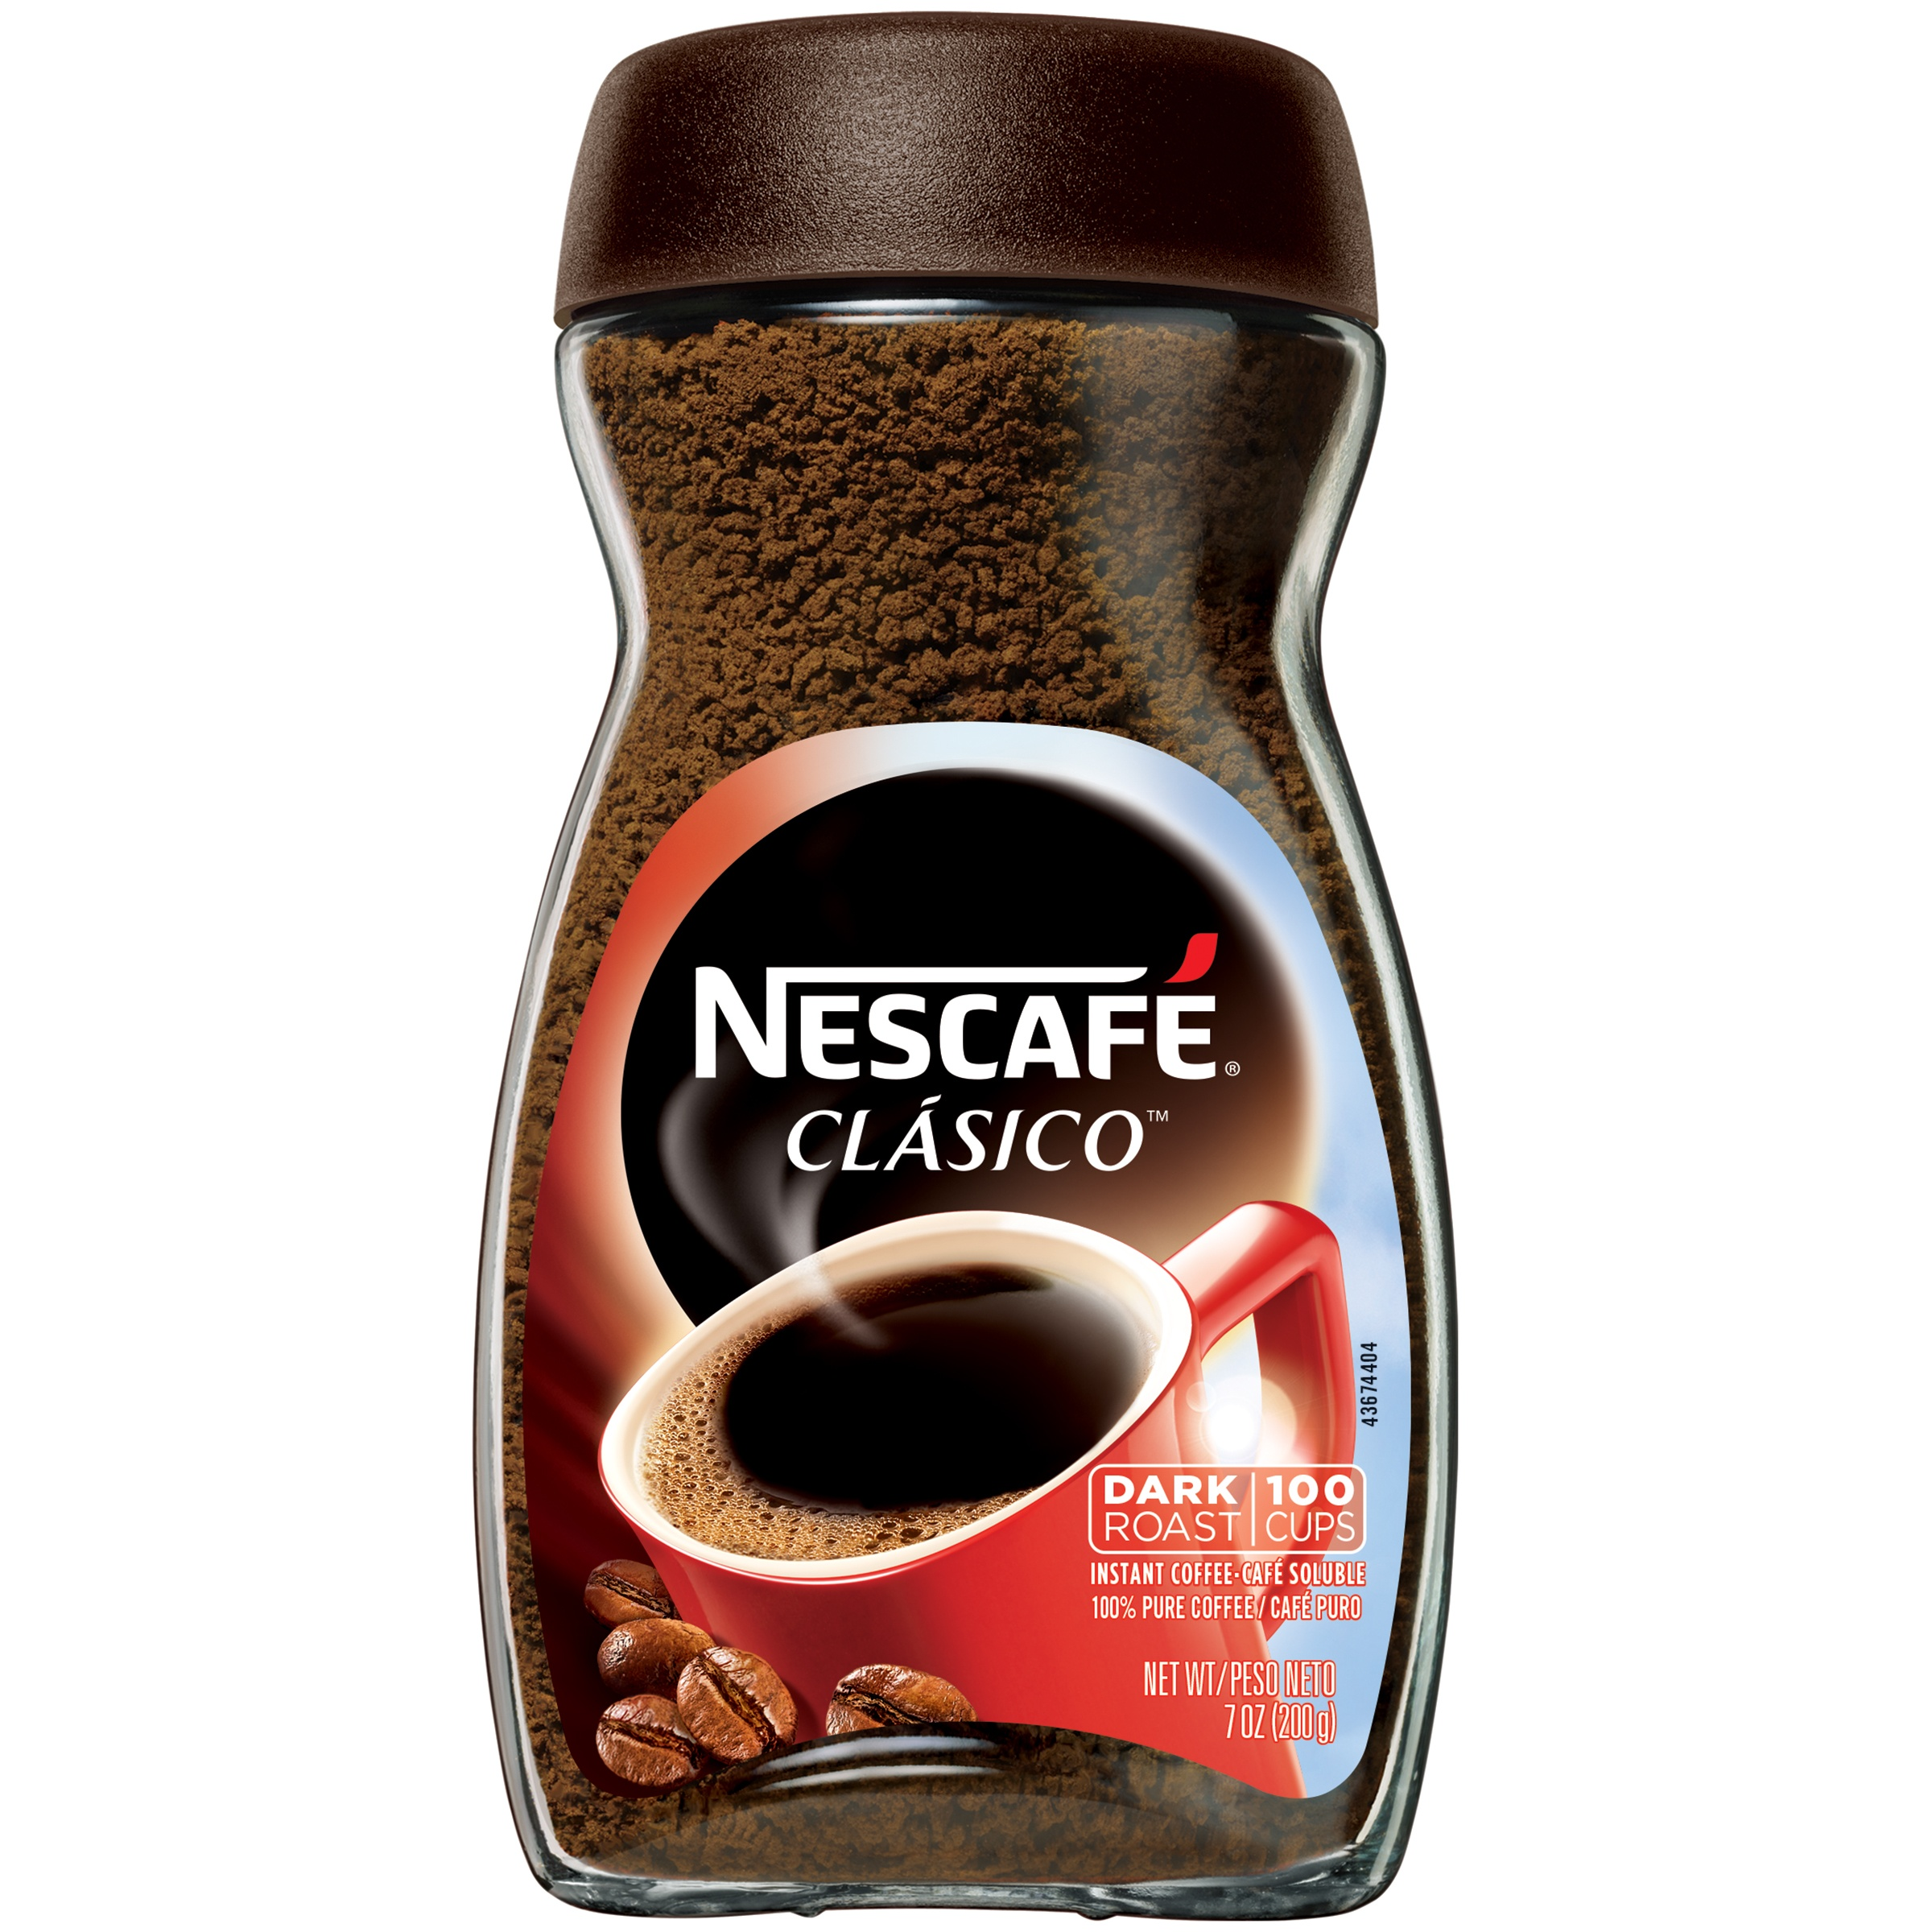 NESCAFE CLASICO Instant Coffee 7 oz. Jar